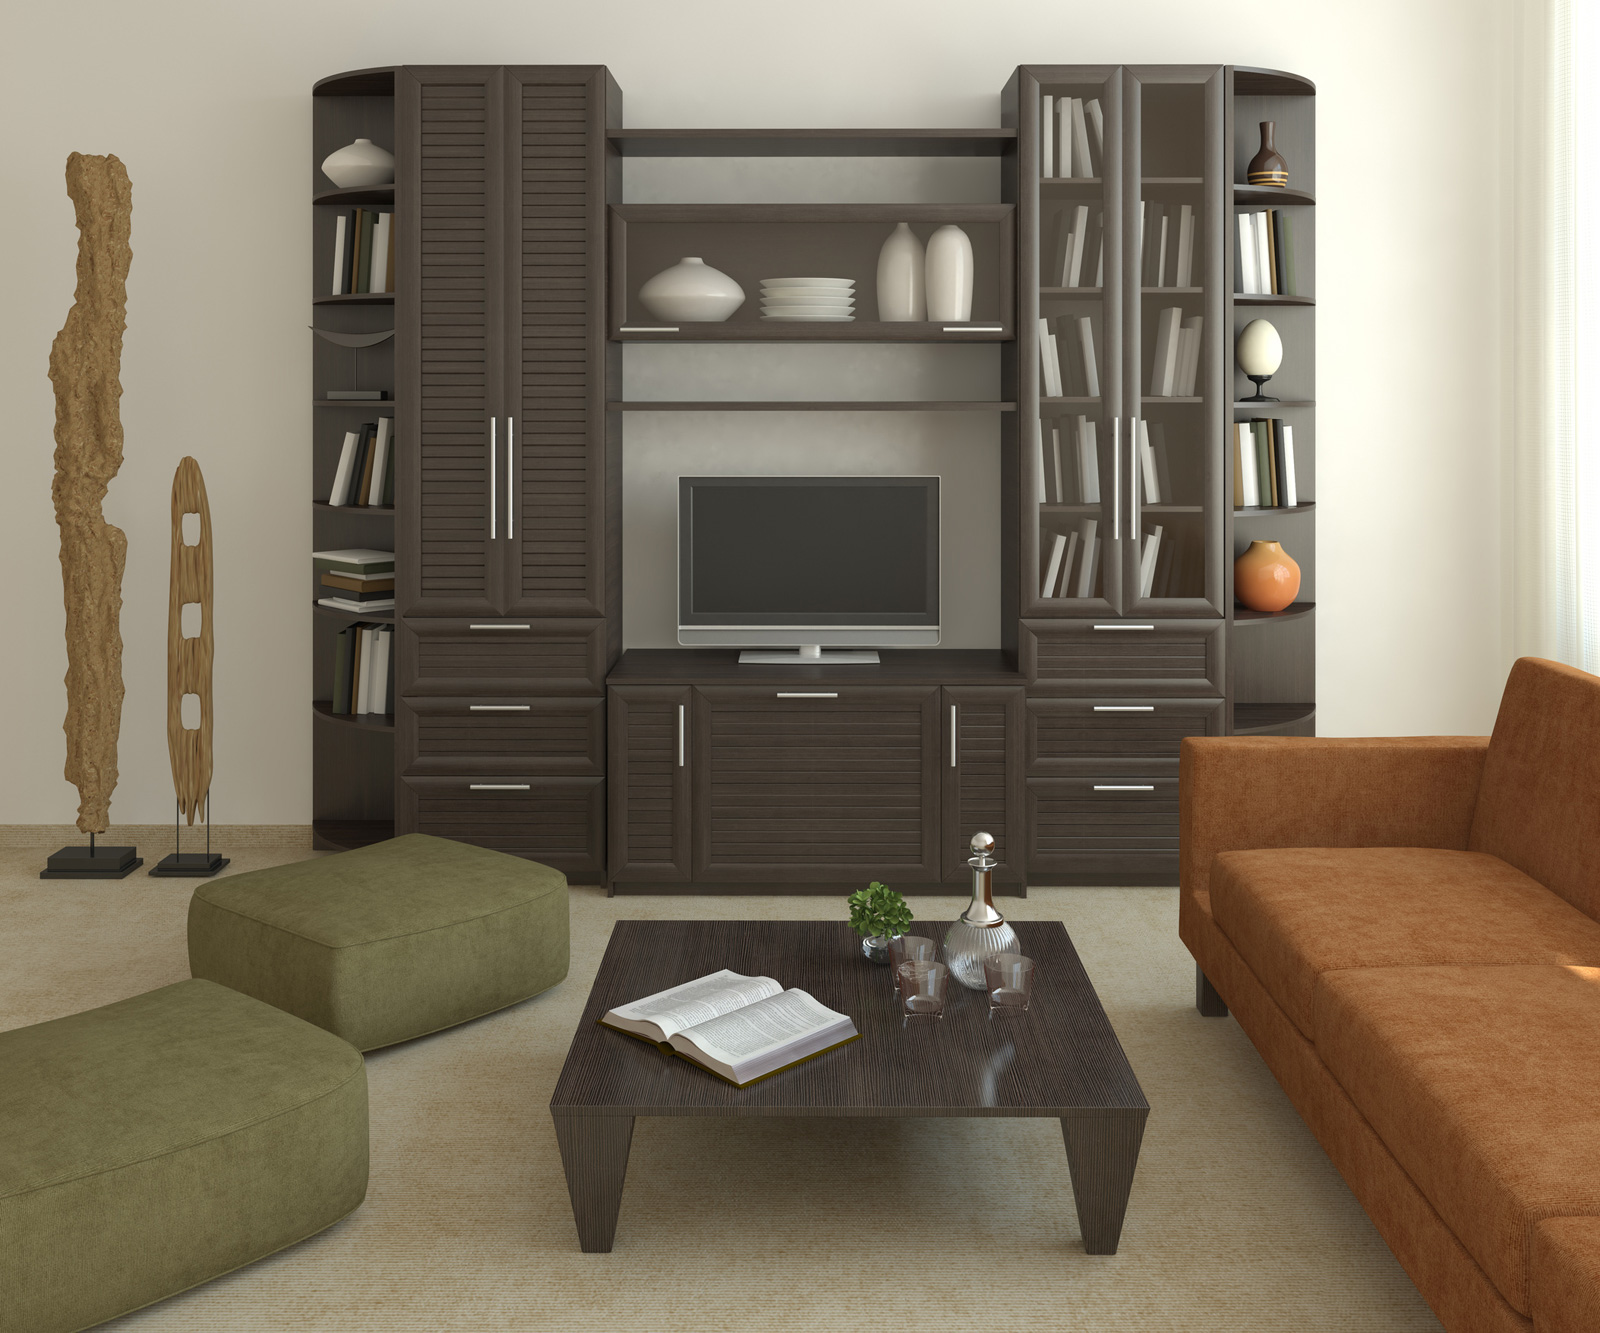 There are some surprising ways to accomplish building on to your home. Modern Furniture: Modern living room cabinets designs.